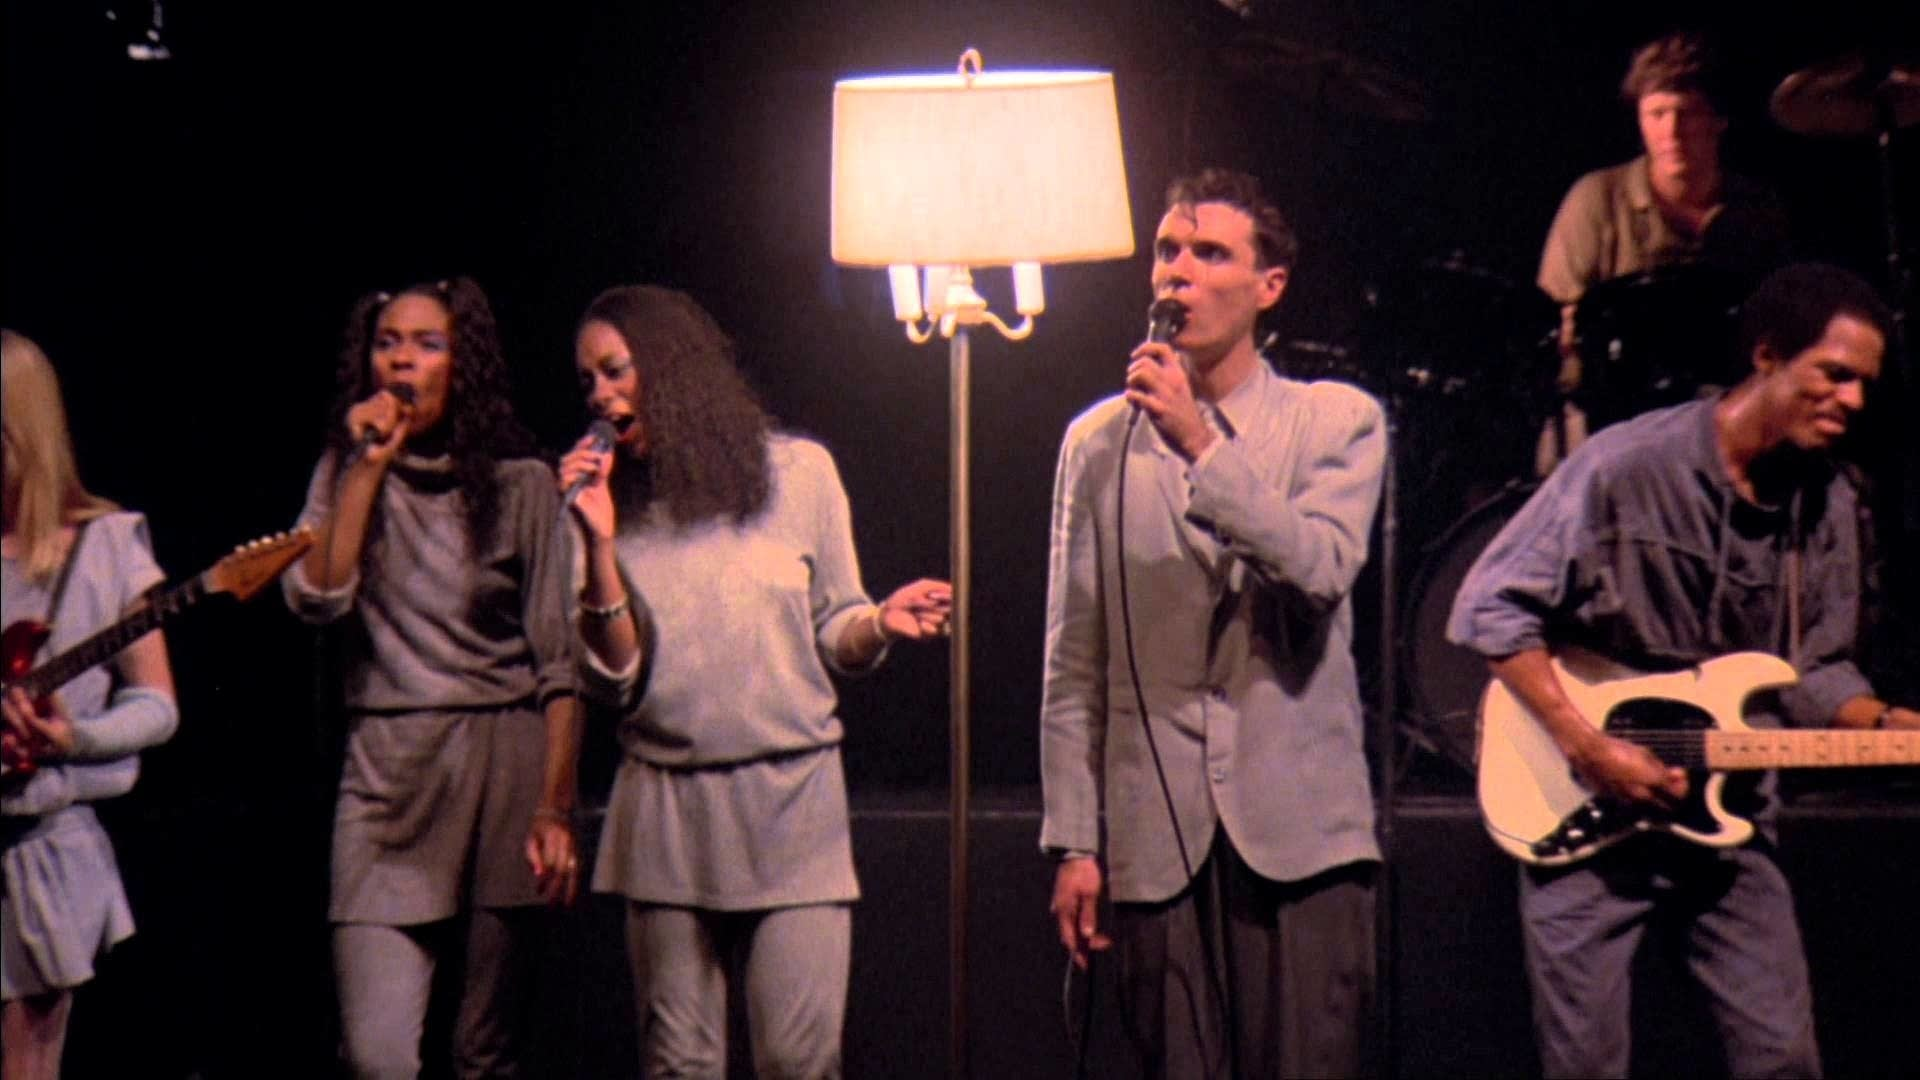 David Byrne and collaborators in 'Stop Making Sense'